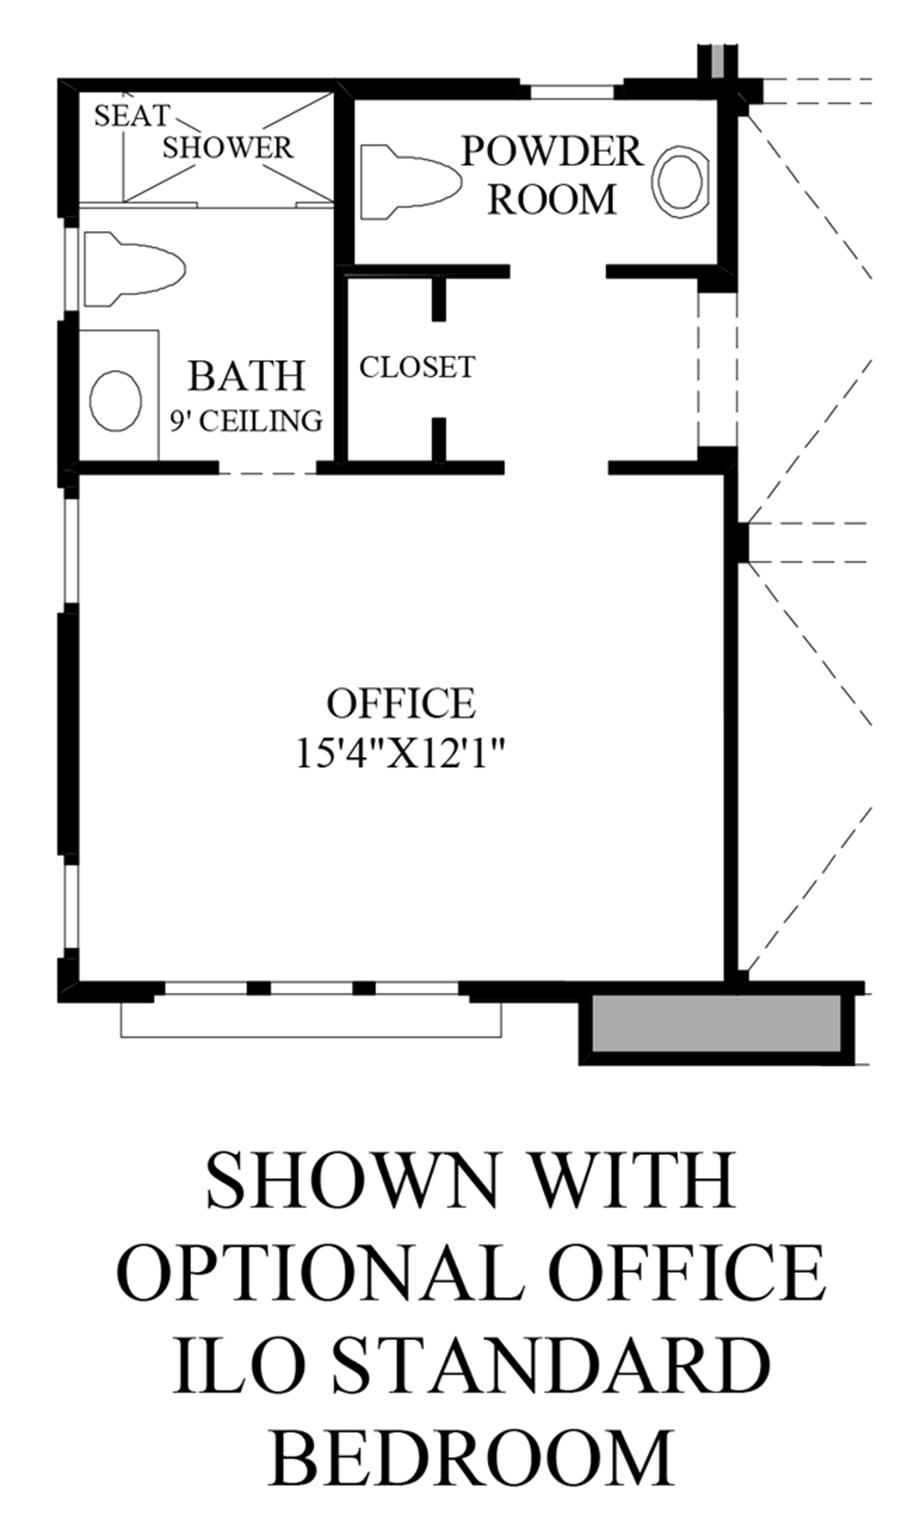 Optional Office ILO Standard Bedroom Floor Plan